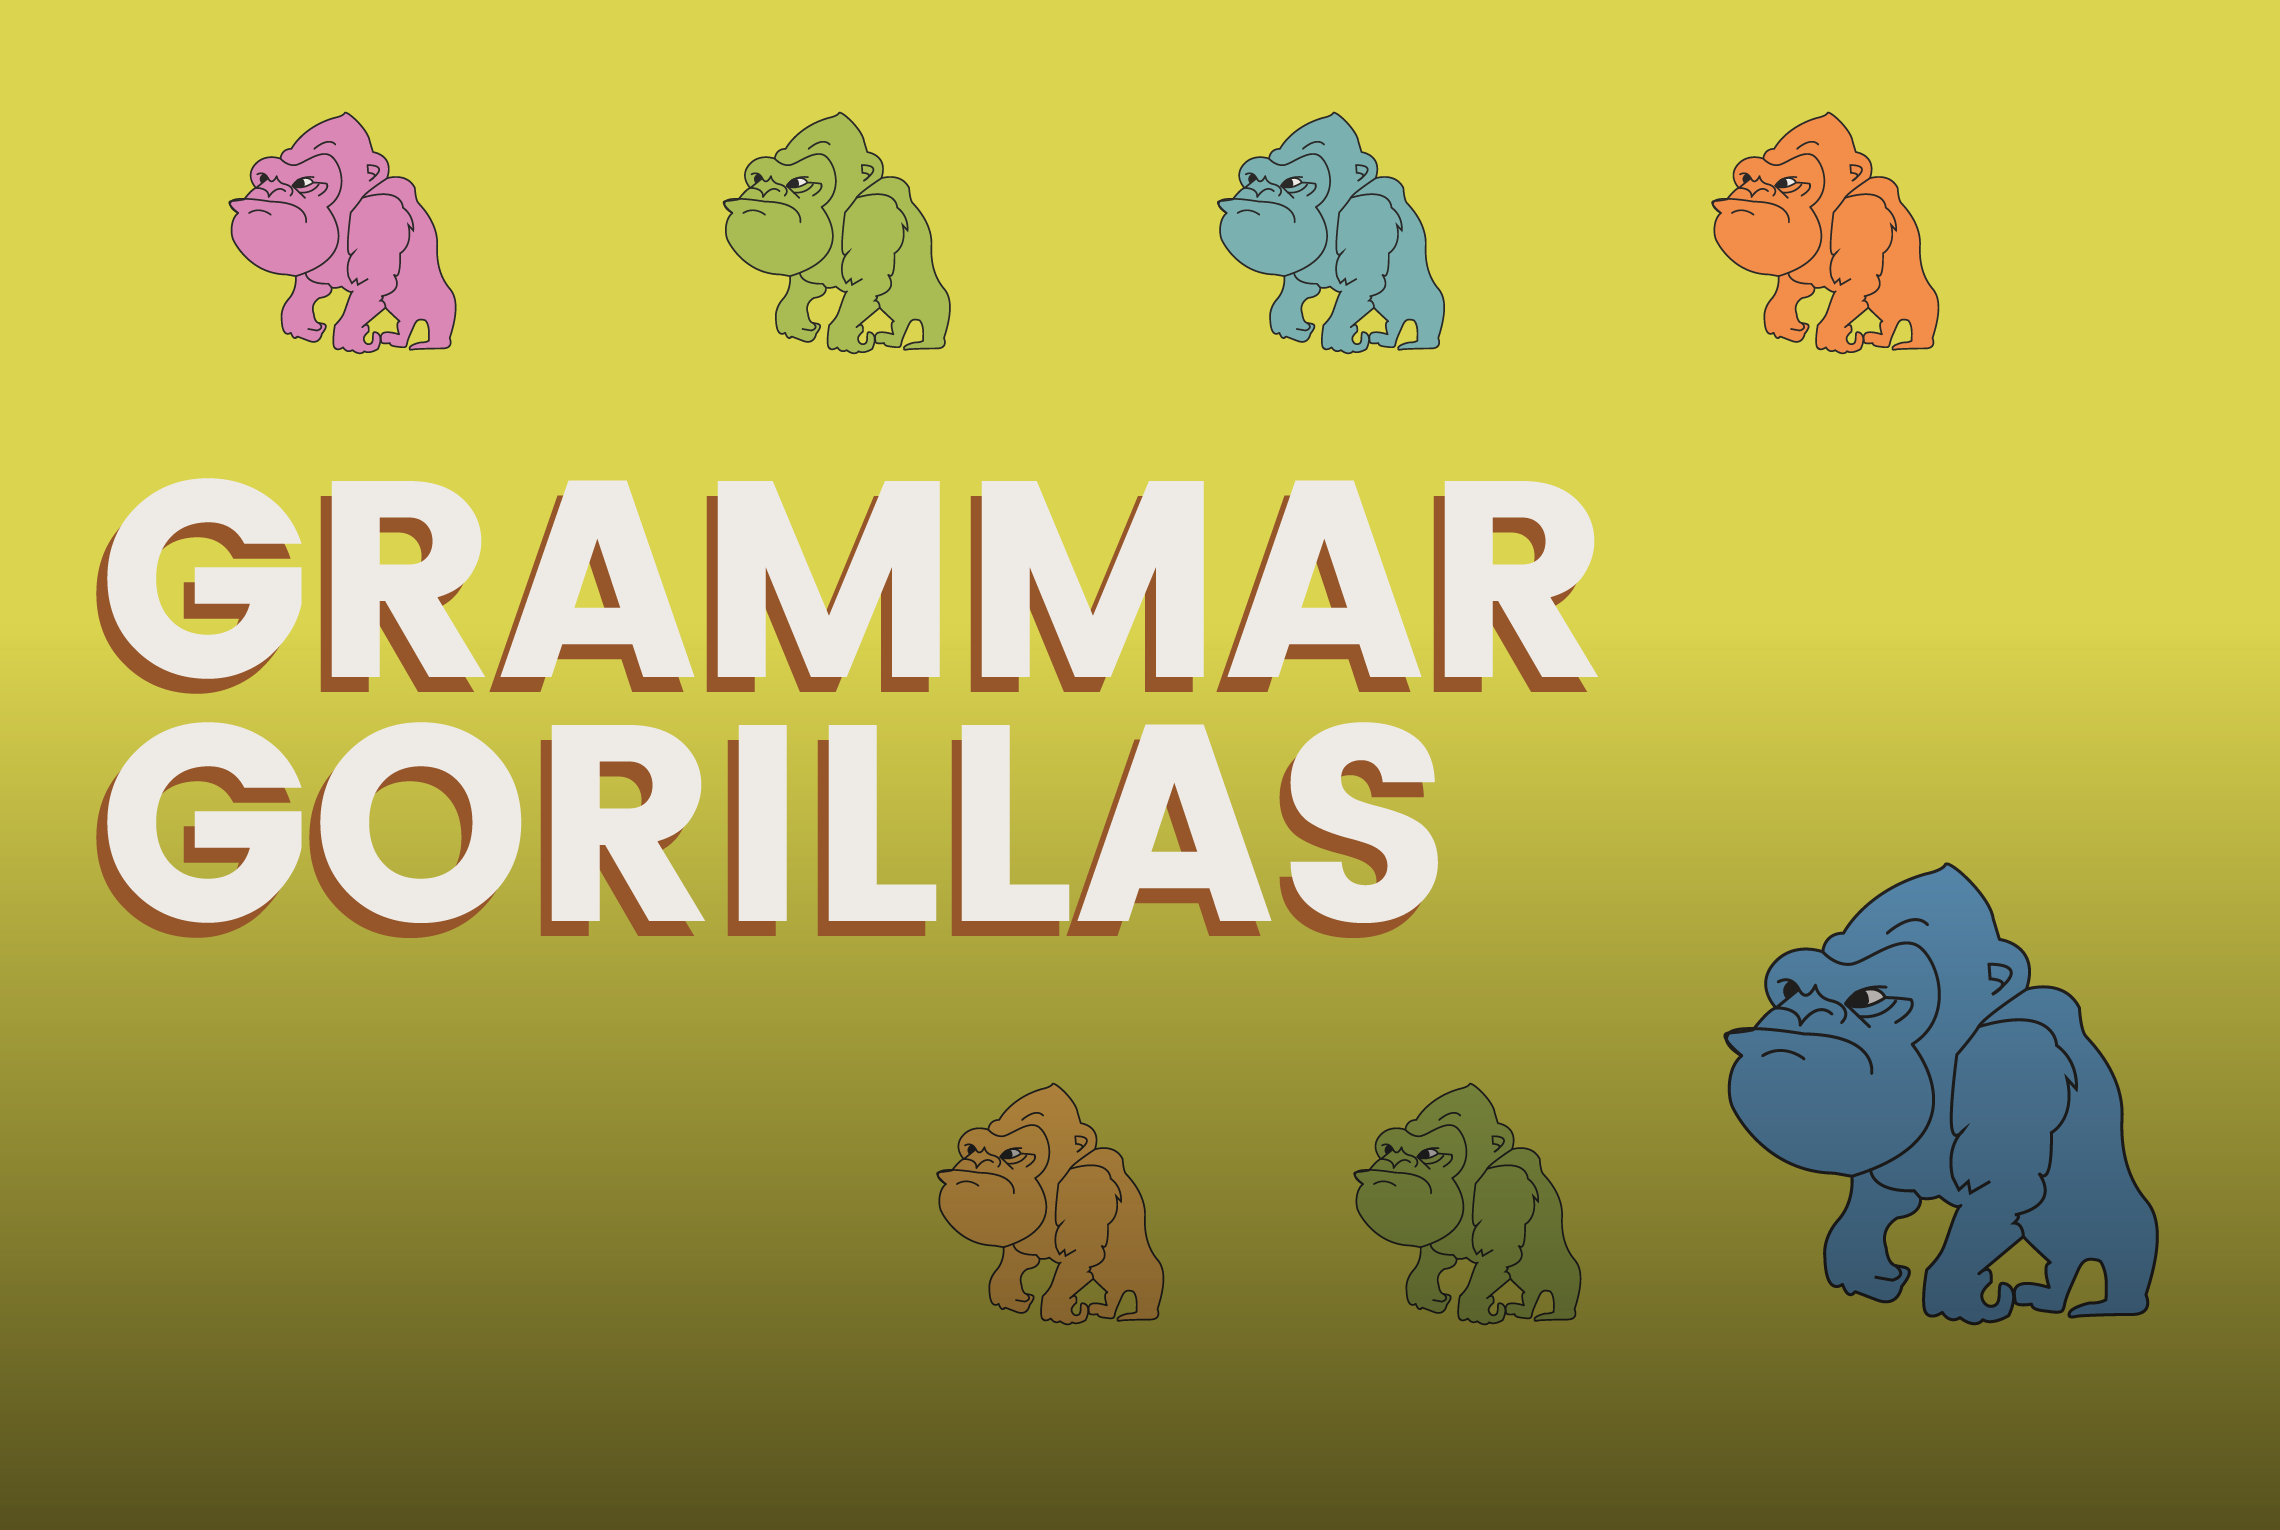 Grammar Gorillas A Game On Funbrain Worksheet For Kids Computer Games Parts Matching Diagram